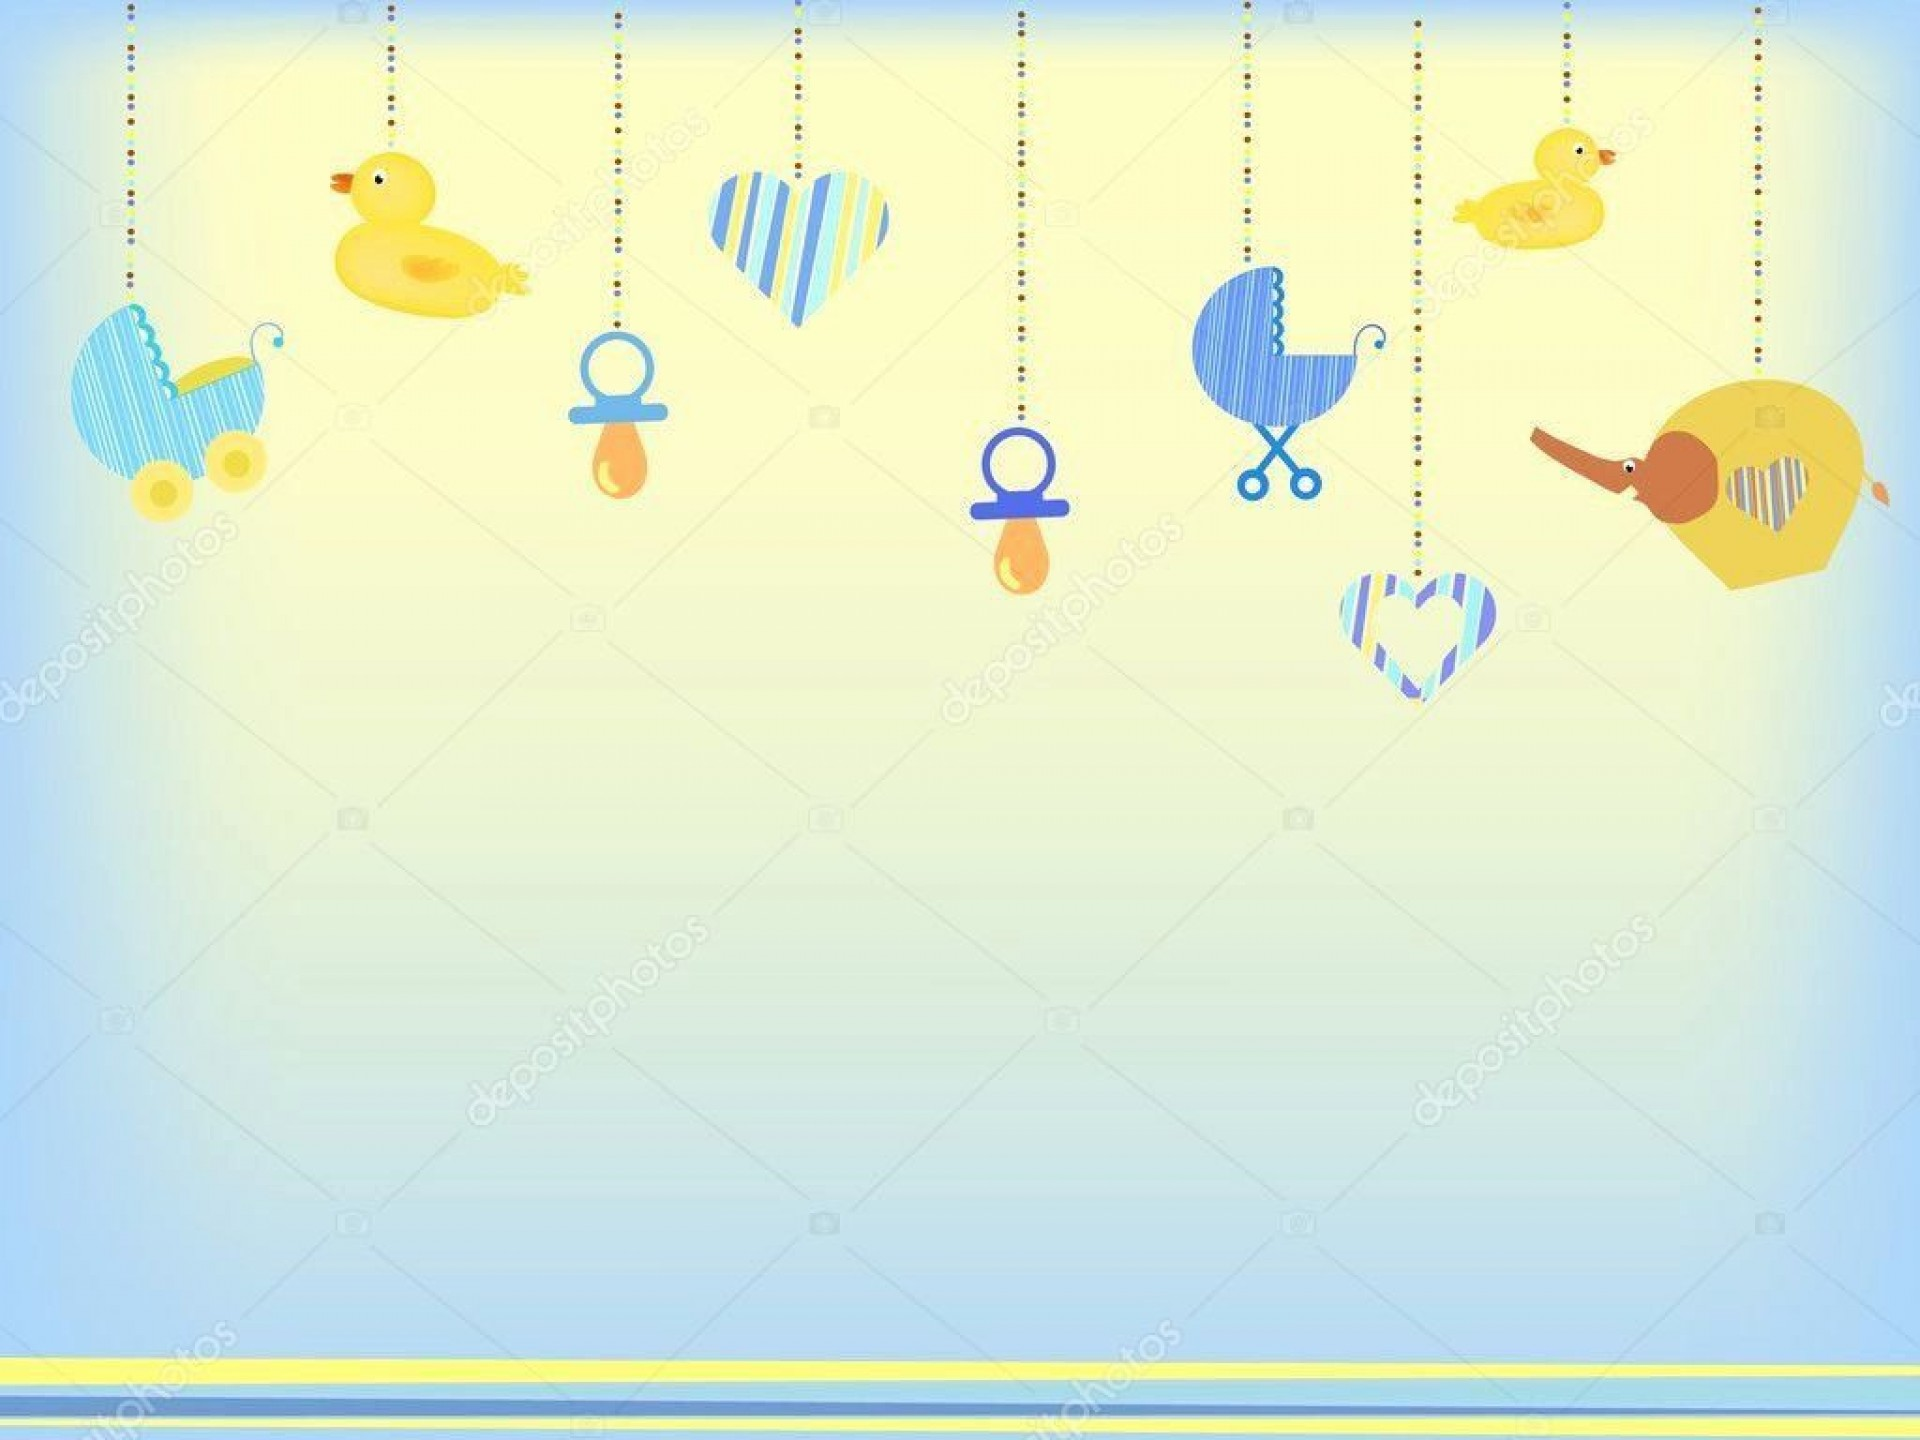 000 Fantastic Free Baby Shower Template For Powerpoint Image  Background1920